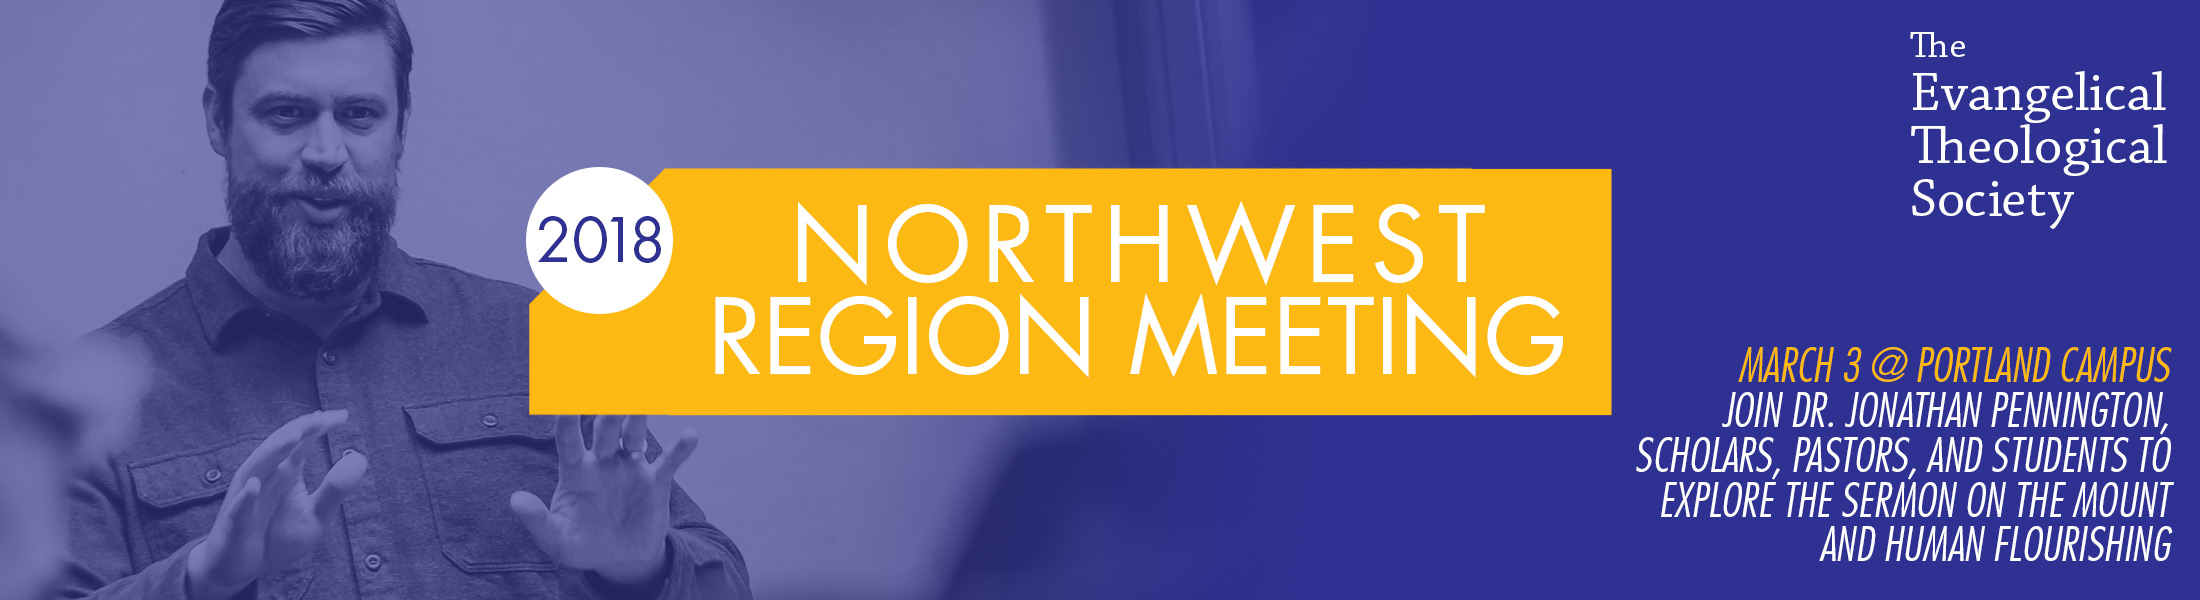 2018 Northwest Region Meeting for Evangelical Theological Society